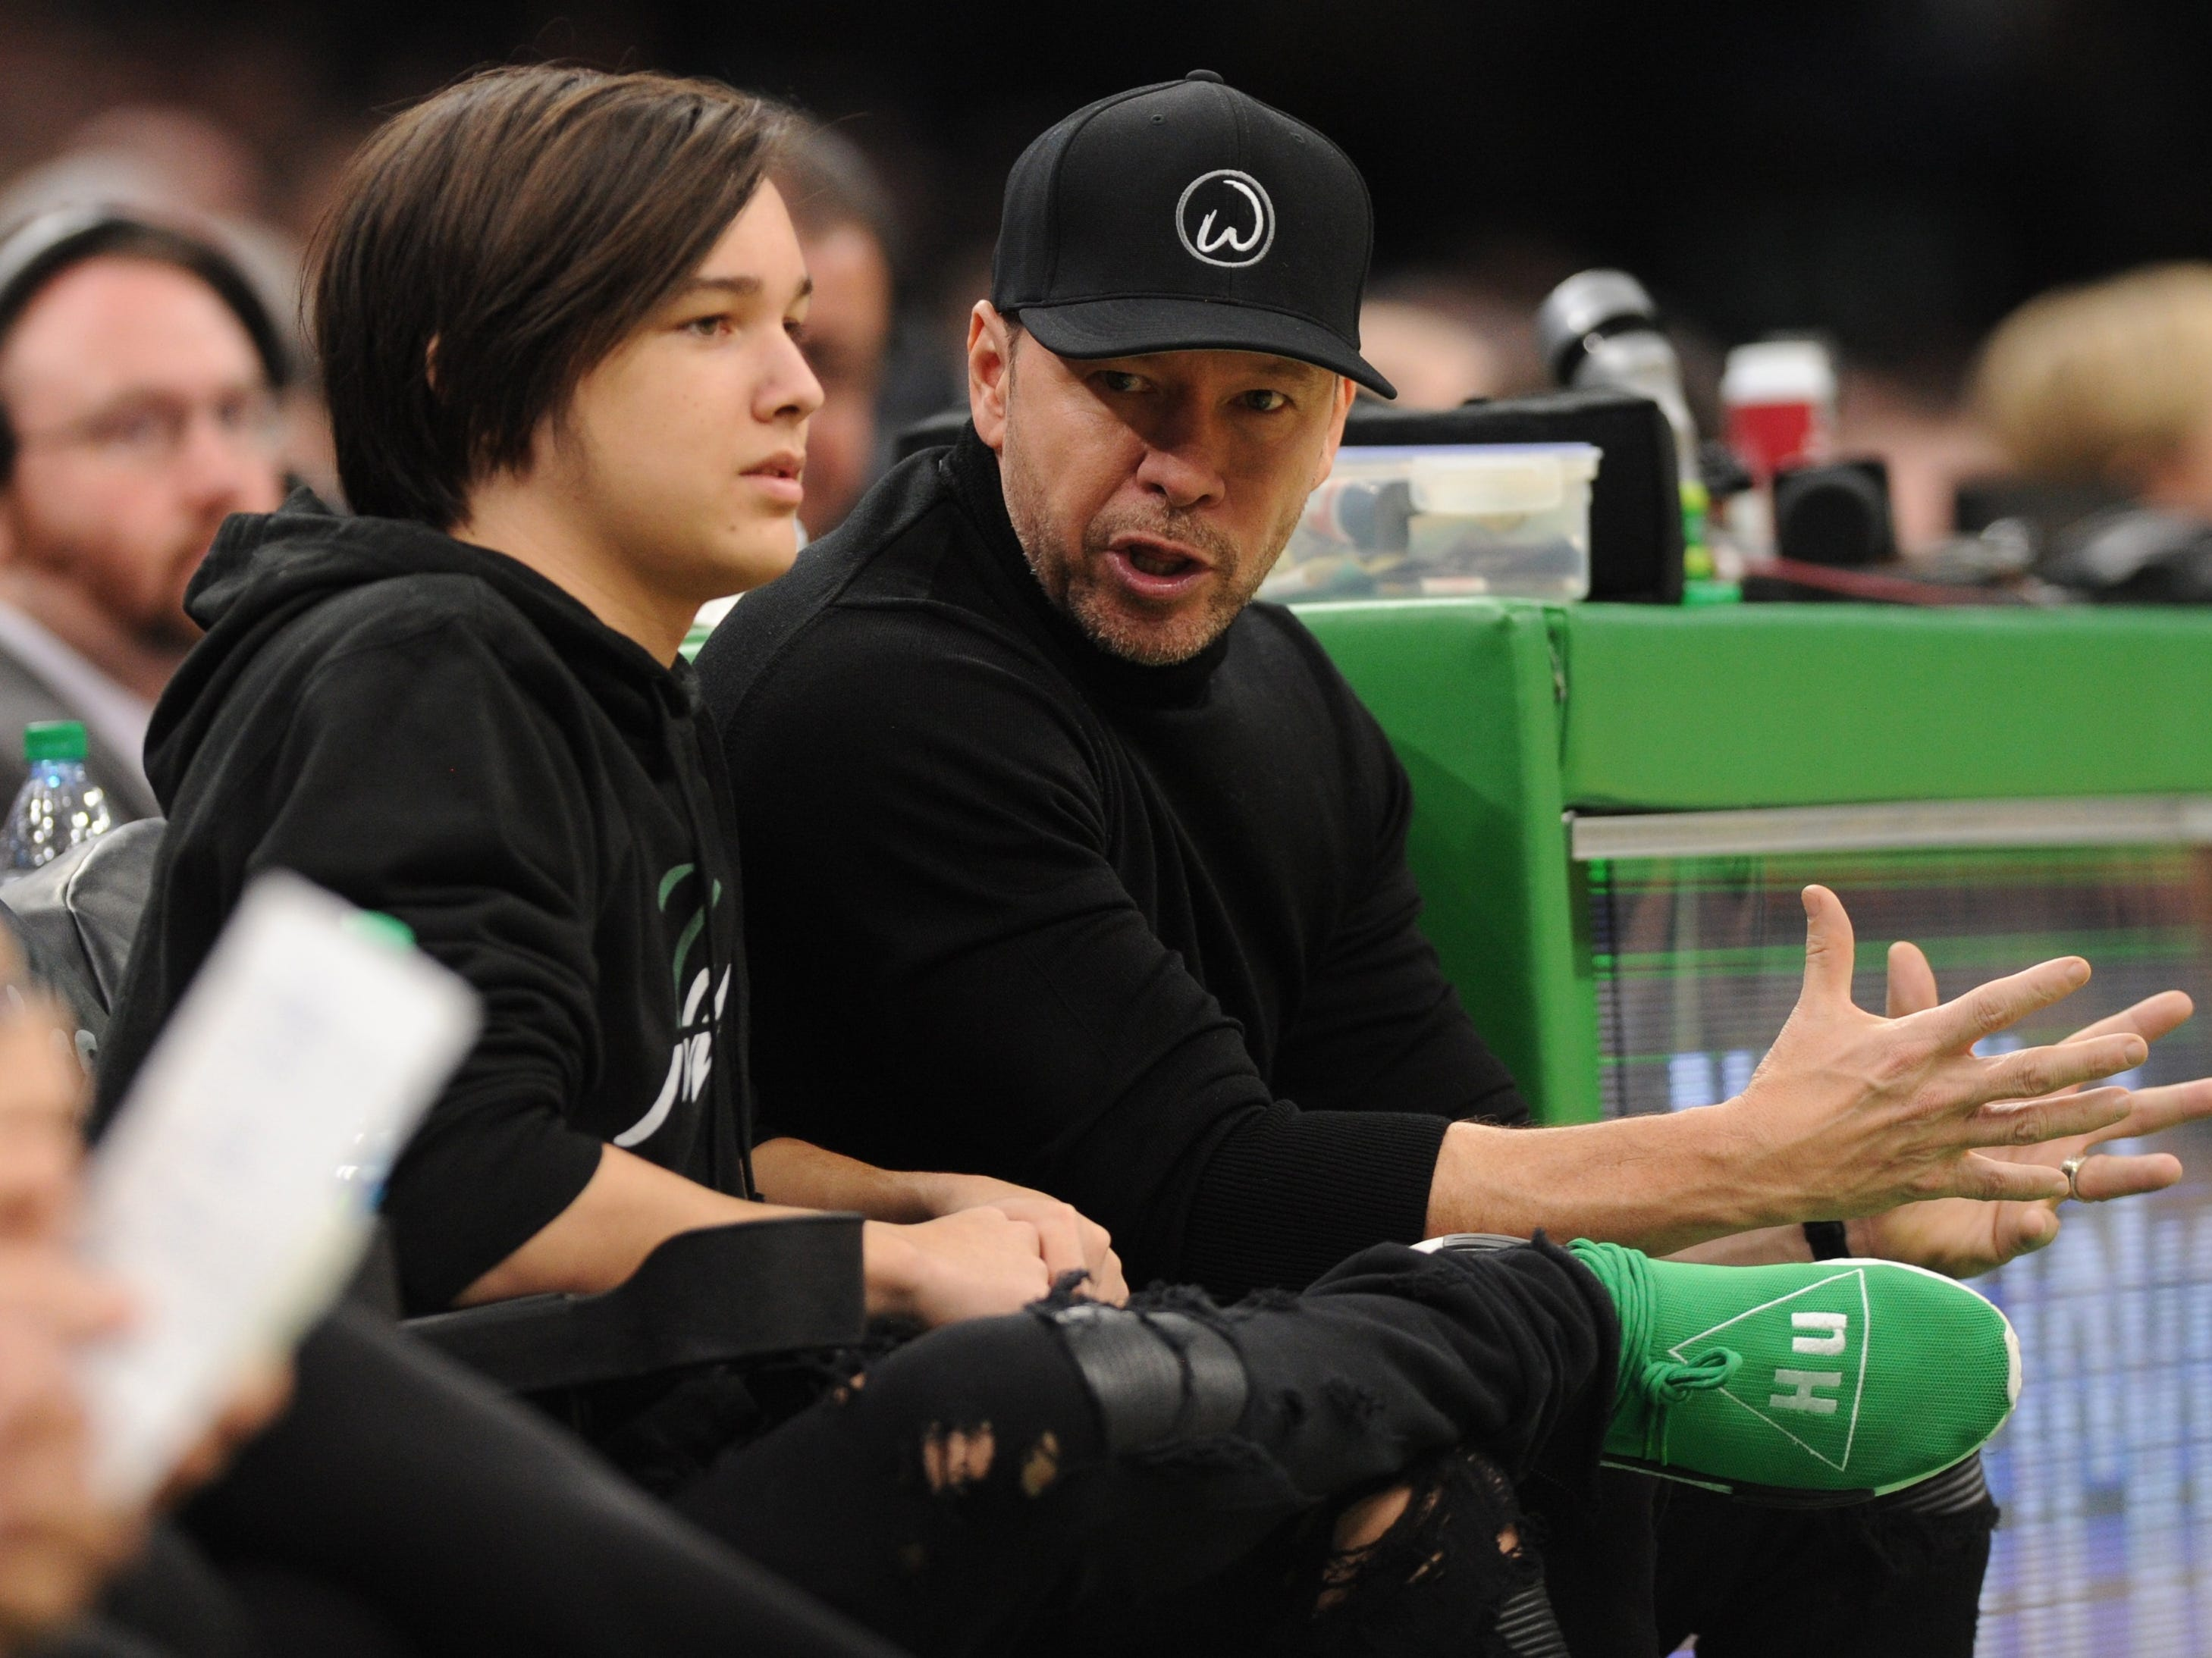 Nov. 16: Actor Donnie Wahlburg and his son Elijah take in the Celtics-Raptors game at TD Garden in Boston.